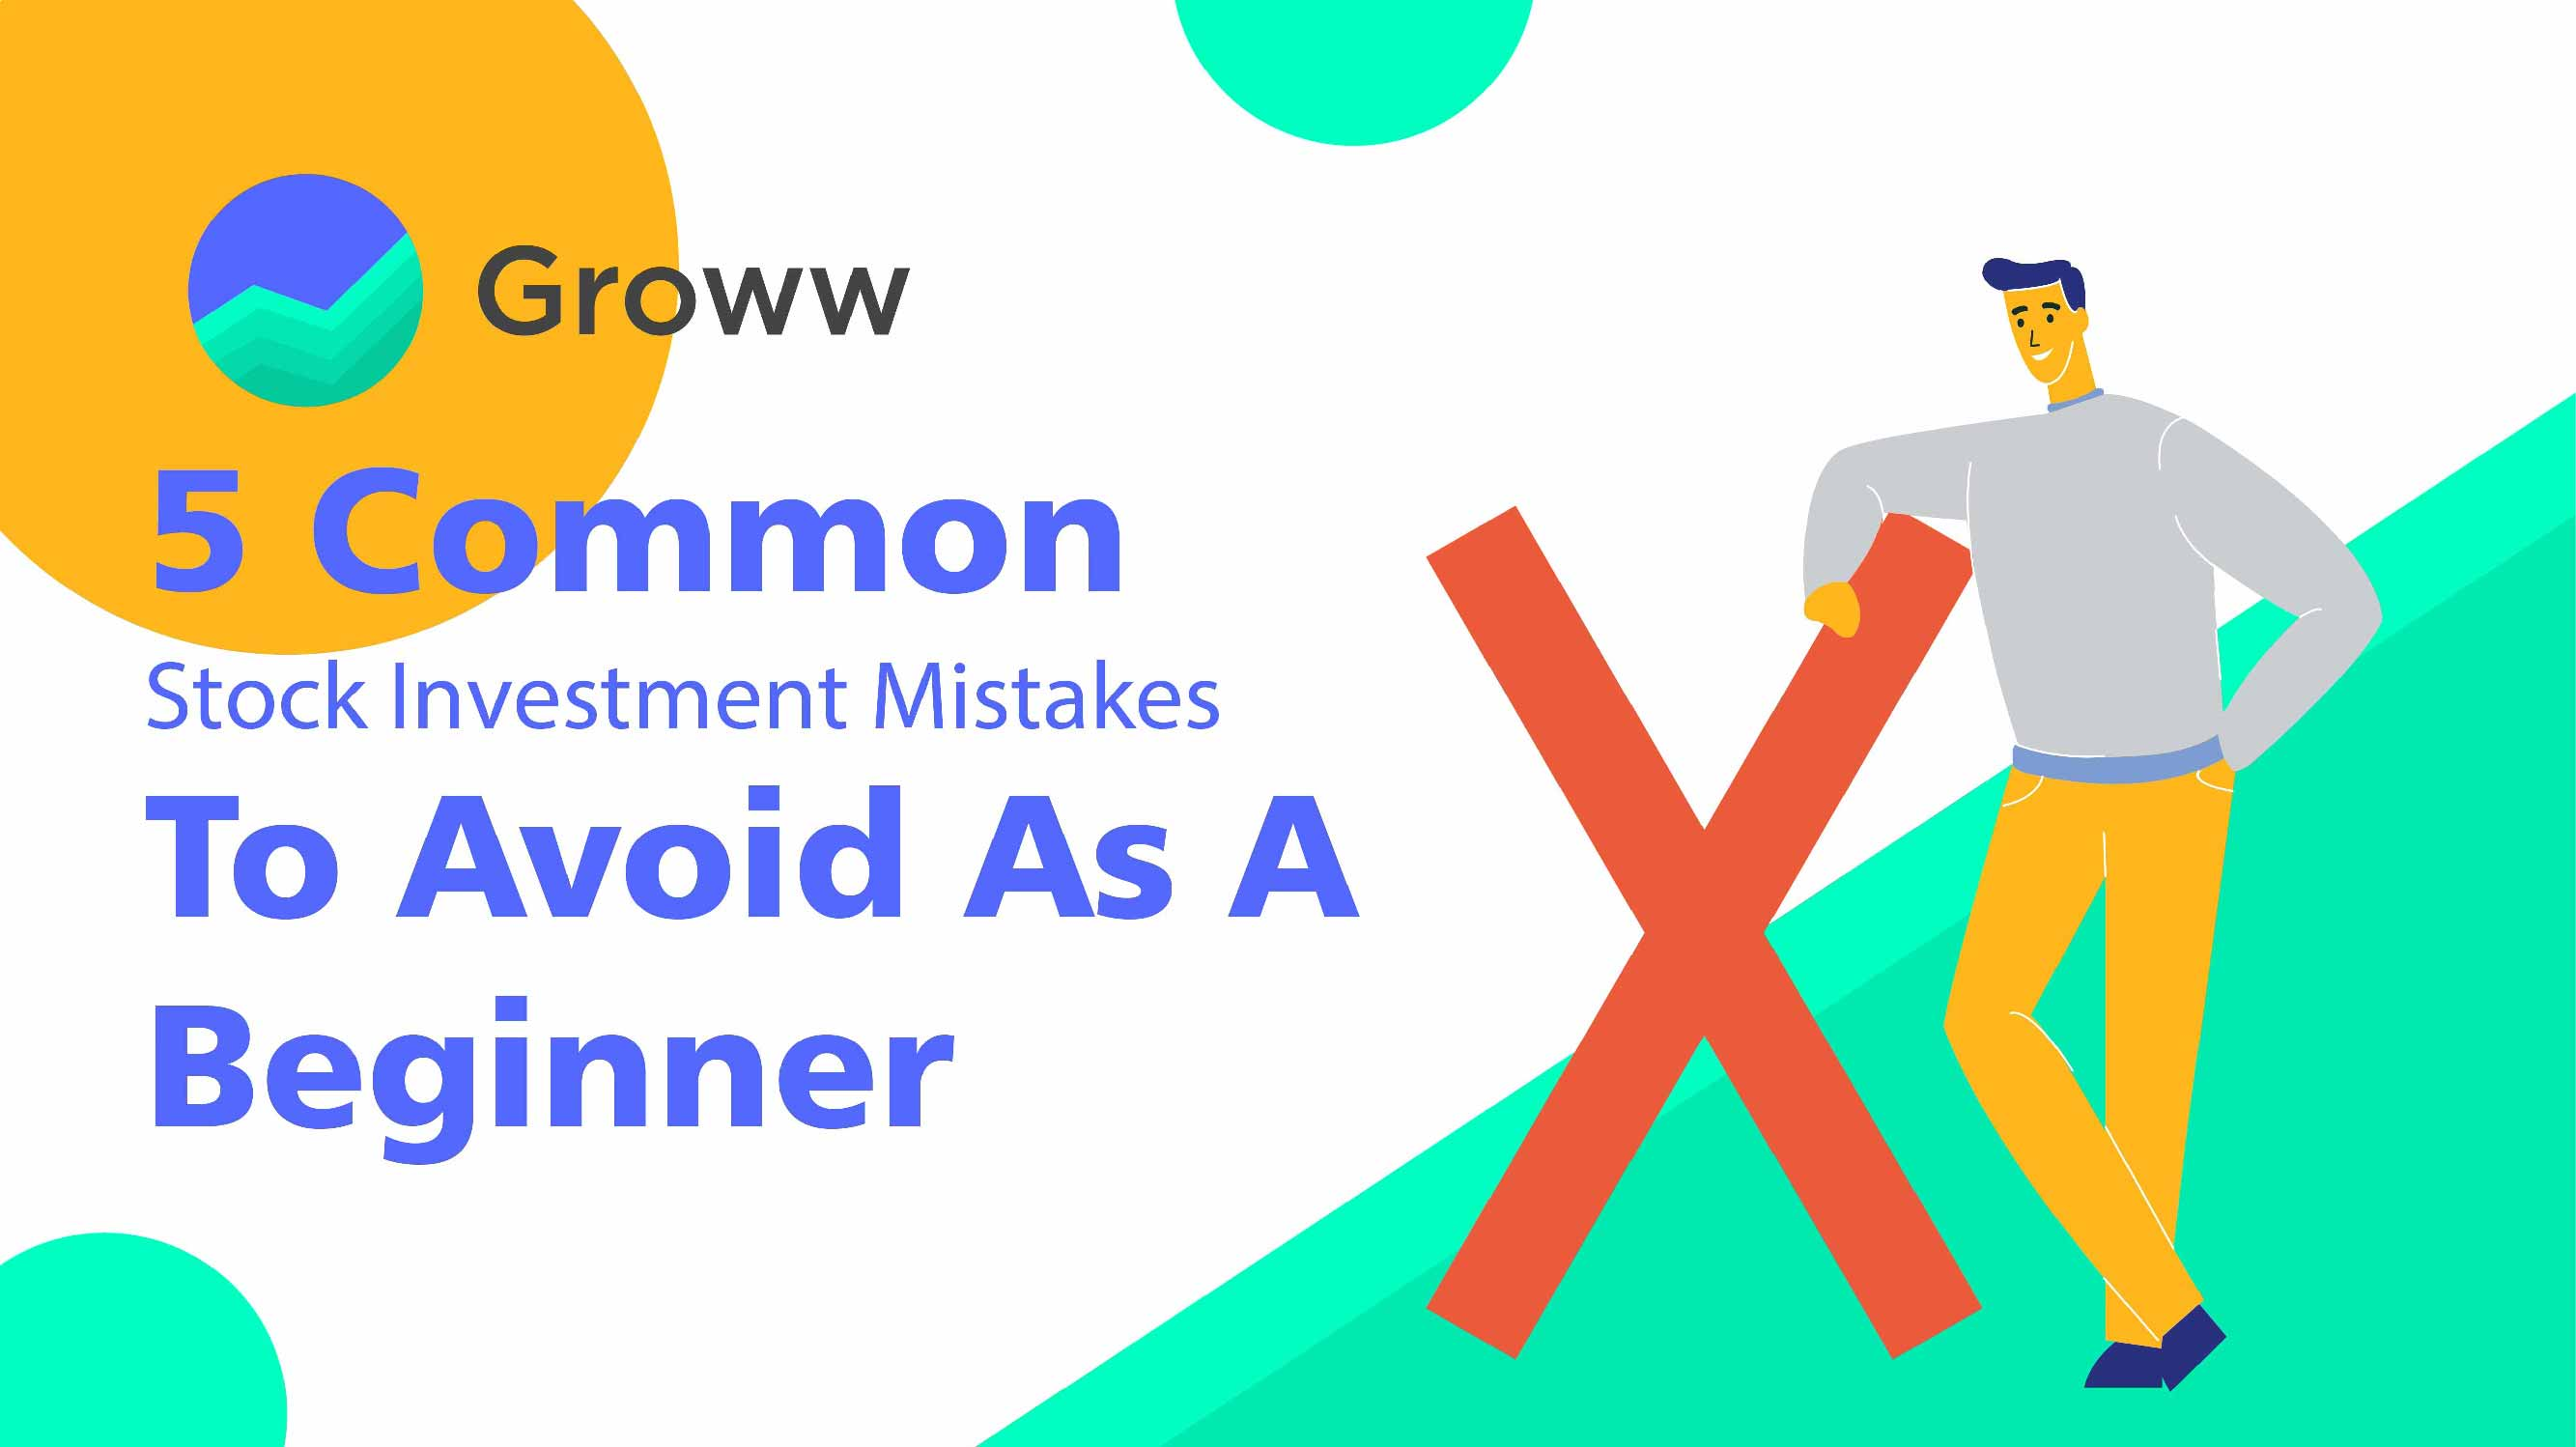 Stock investing mistakes to avoid